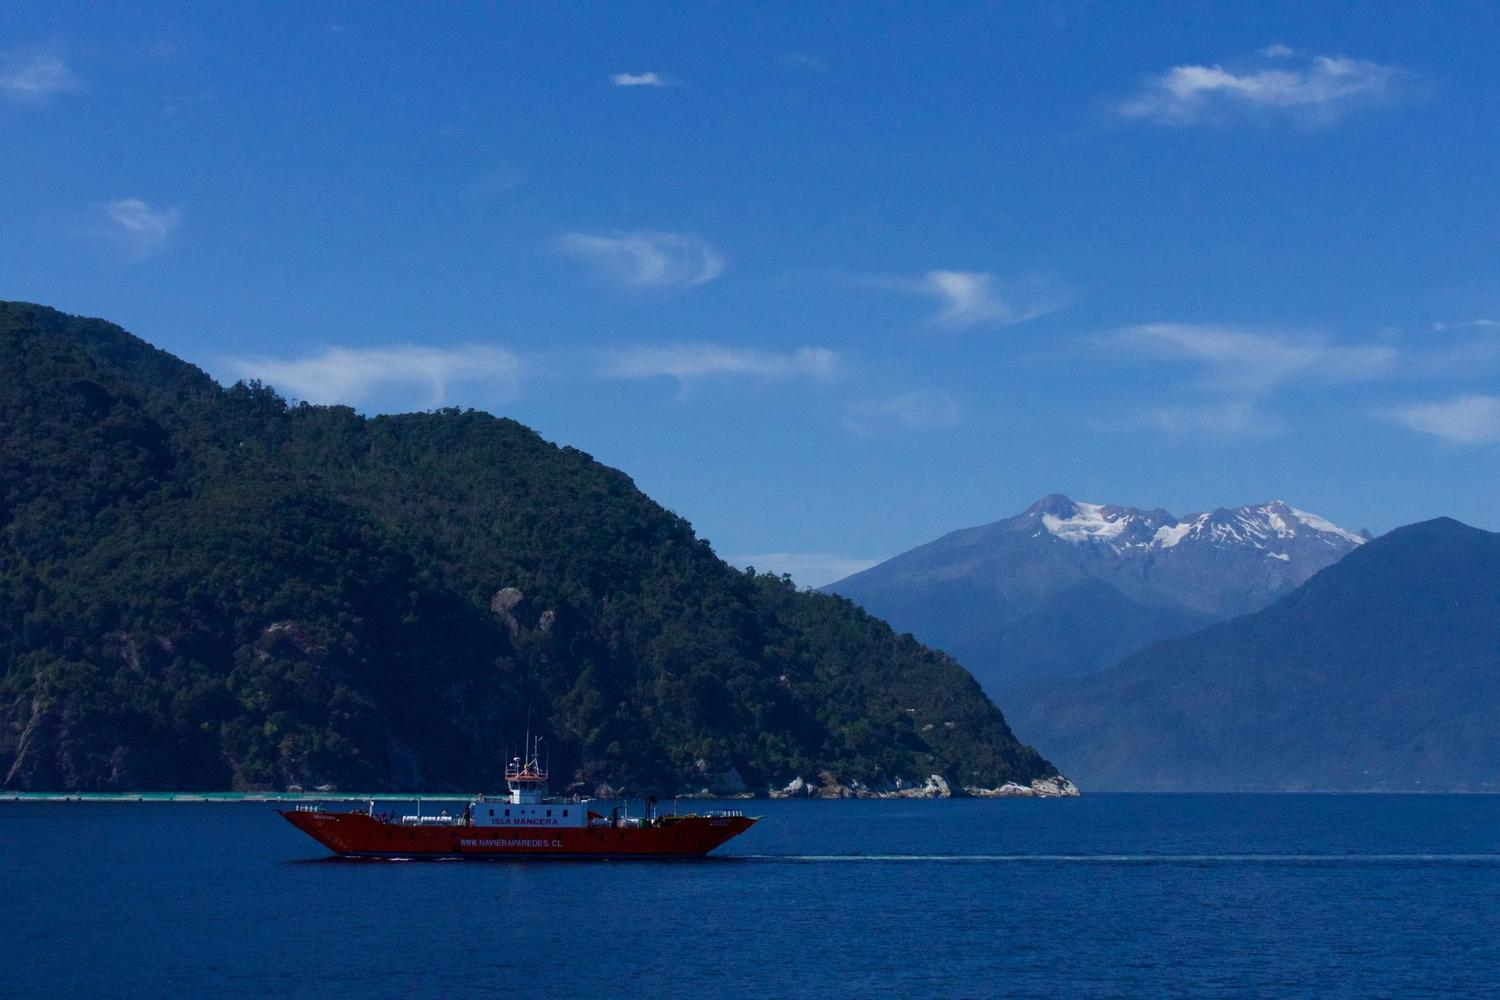 Setting off on the Carretera Austral by ferry